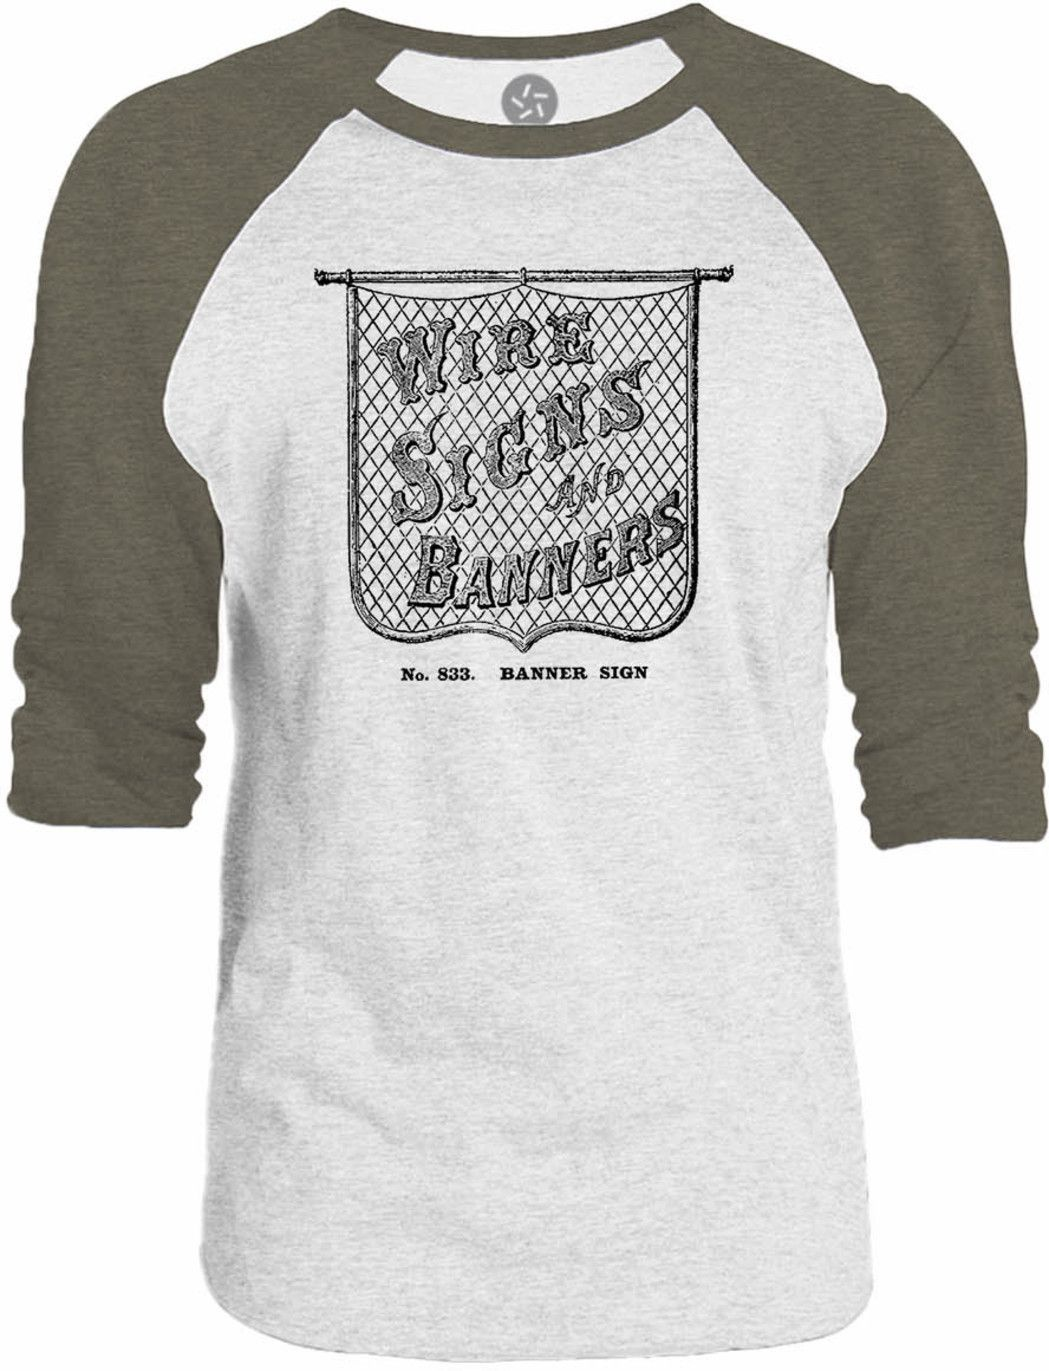 Big Texas Old Wire Sign 3/4-Sleeve Raglan Baseball T-Shirt